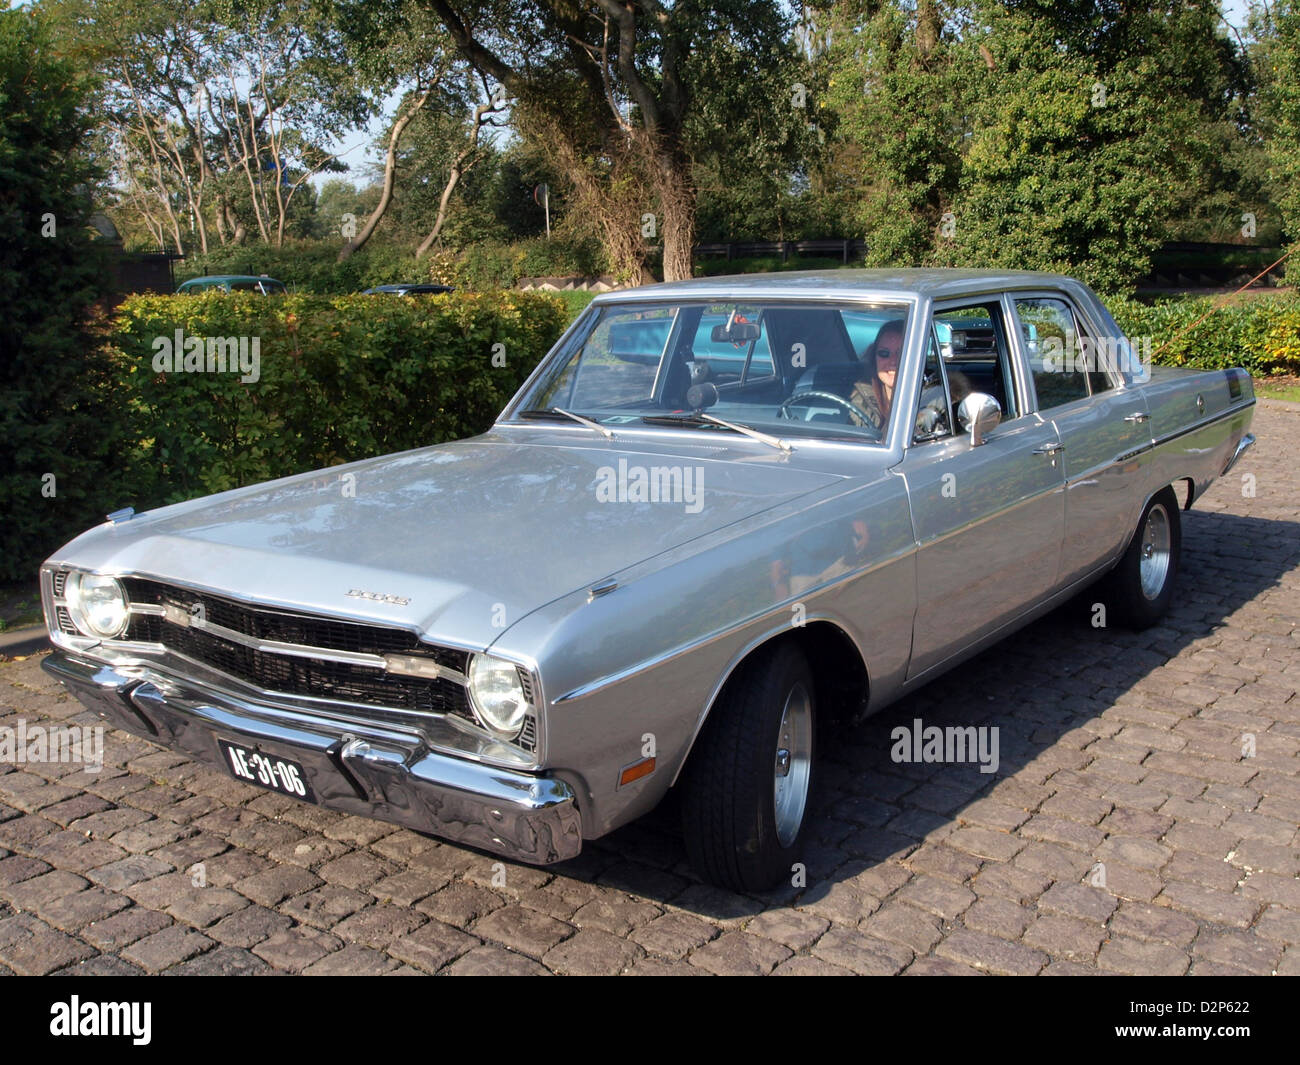 Dodge Dart High Resolution Stock Photography And Images Alamy